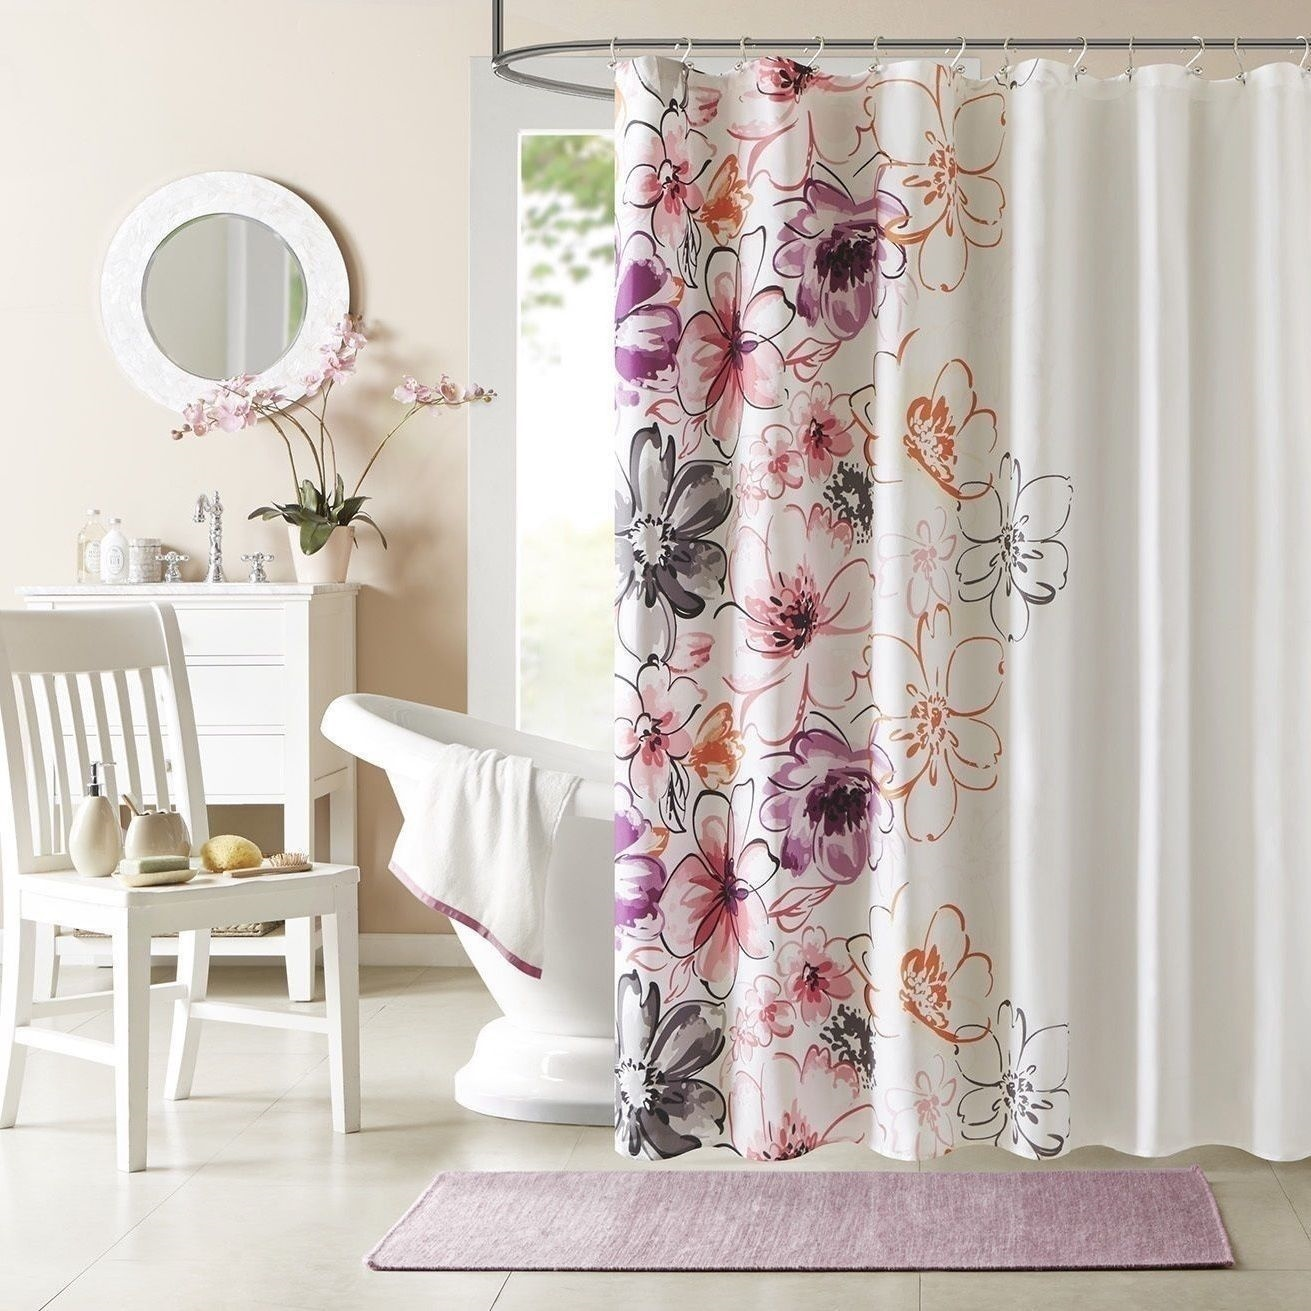 New Pink Orange Plum Floral Shower Curtain Fabric Modern Bathroom Bath 72 In Nwt Ebay